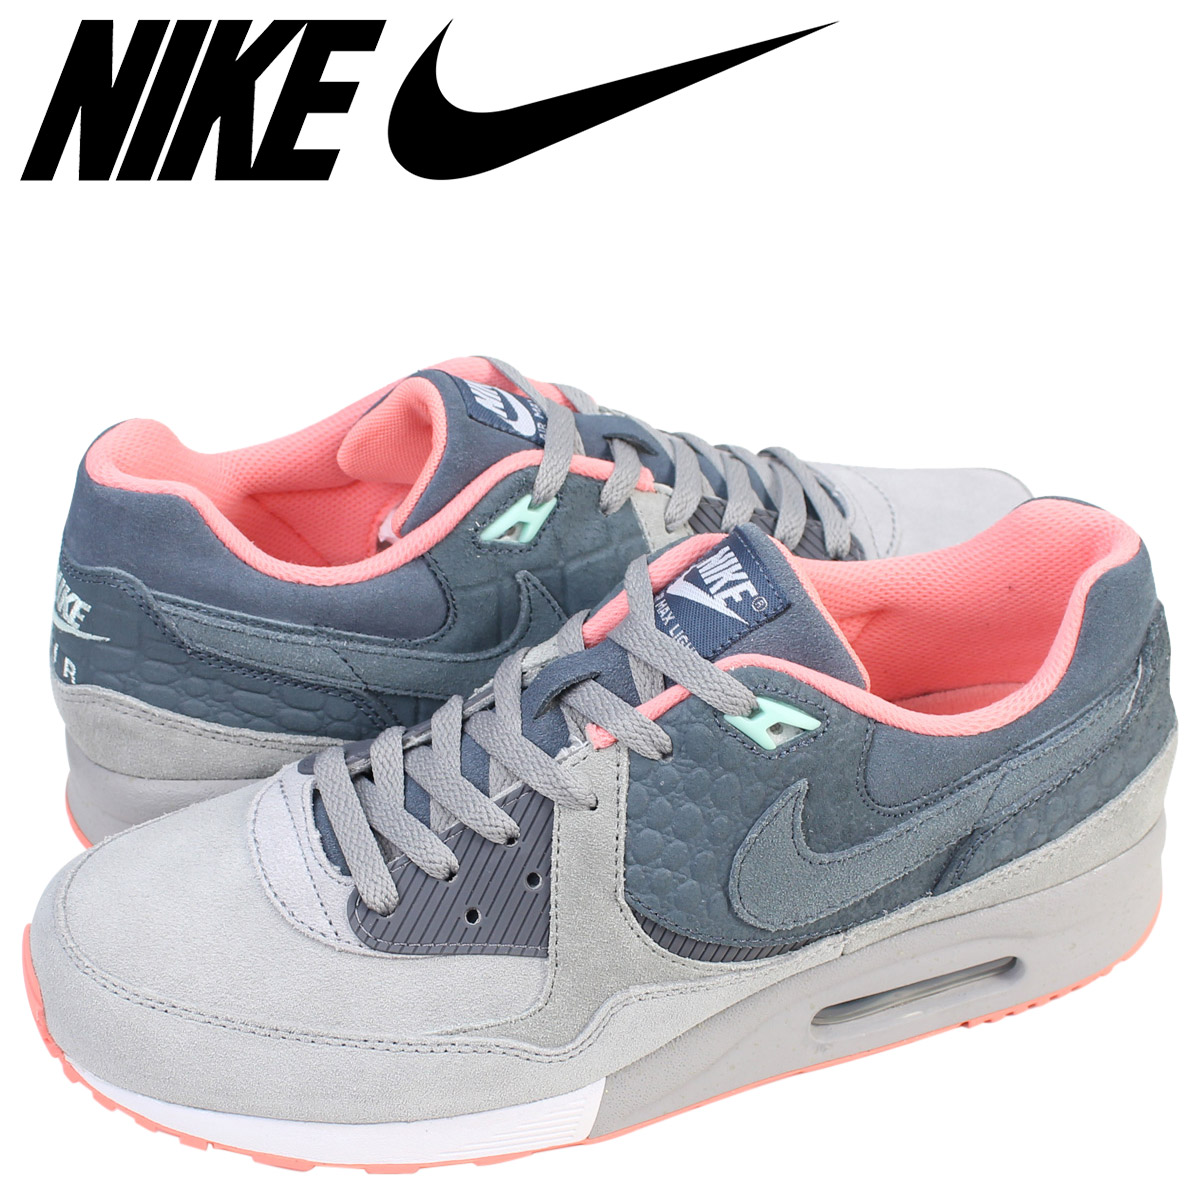 finest selection ef8c0 30e6d Nike NIKE Air Max sneakers AIR MAX LIGHT PREMIUM QS salmon child  653,742-004 men s ...